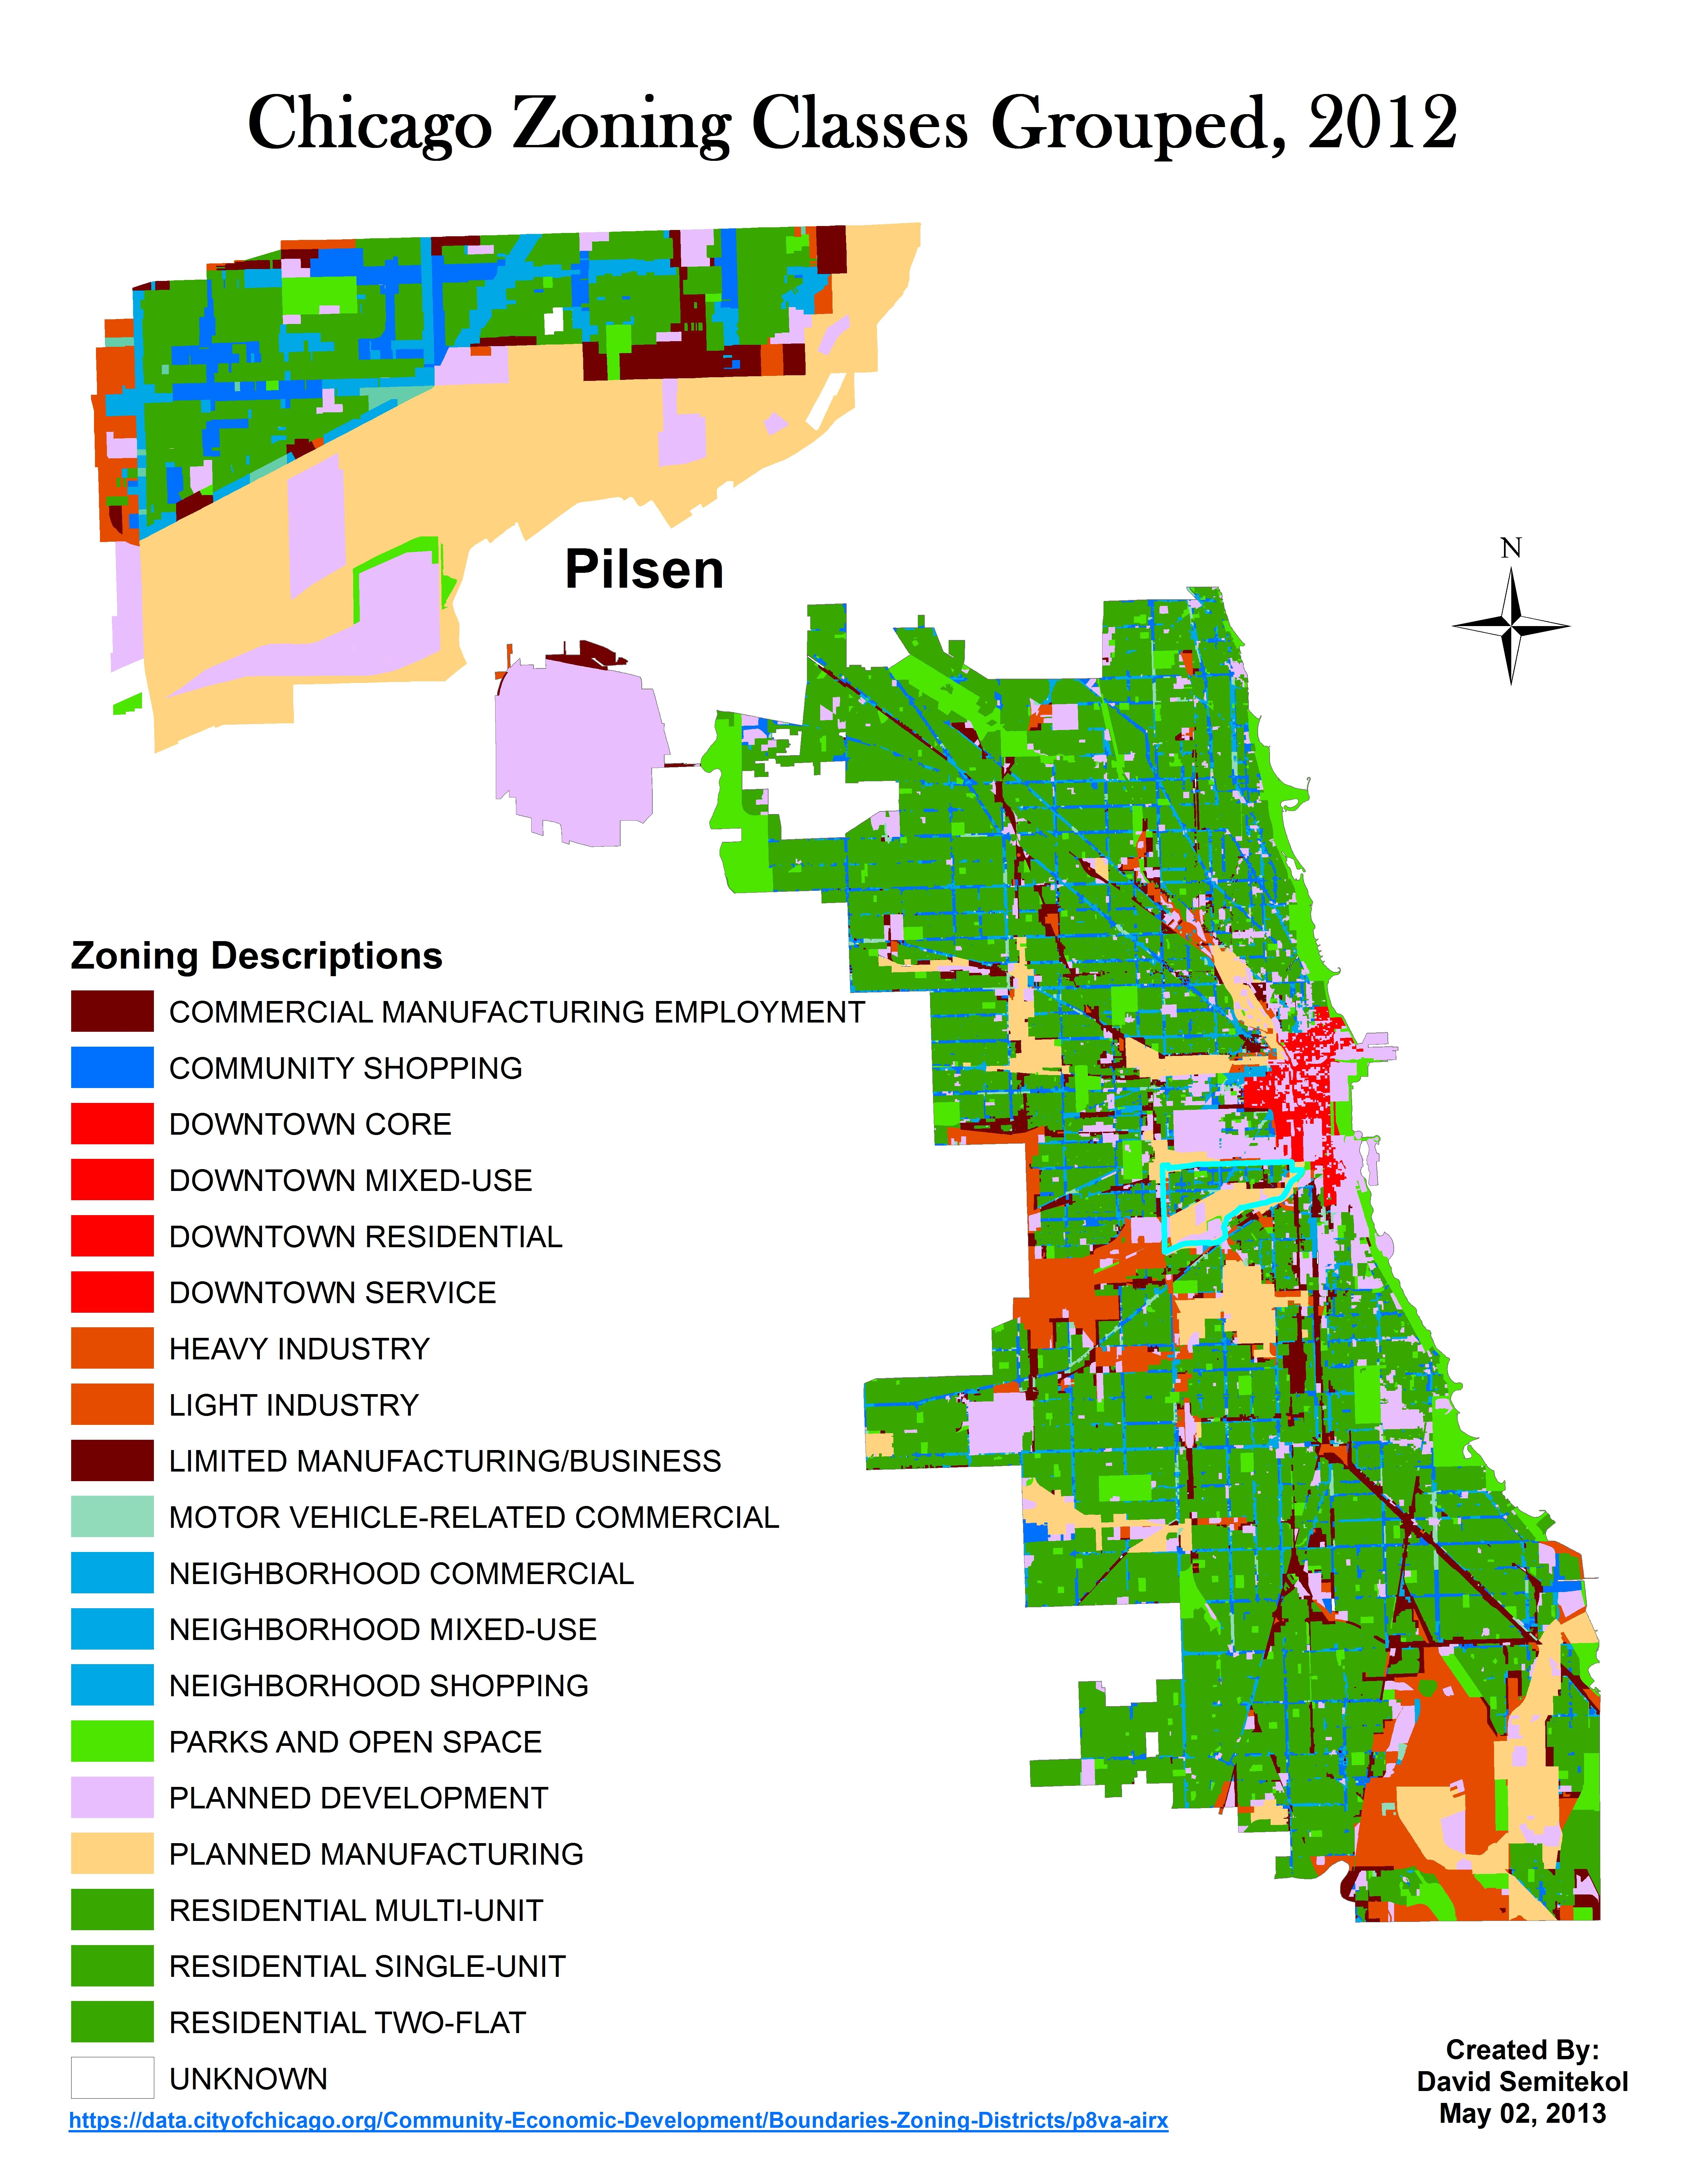 Pilsen Zoning Map | Maps | Map on chicago attraction map interactive click, chicago cemetery map, chicago zones, chicago residential parking permit, chicago and surrounding suburbs maps, chicago municipal code, chicago temperature map, chicago arcology map, chicago permit parking map, chicago annexation map, chicago budget, chicago street index, chicago topography map, chicago construction map, chicago submarket map, denver rtd light rail route map, a long way from chicago map, chicago metra system map, chicago zip code map printable, chicago watershed map,